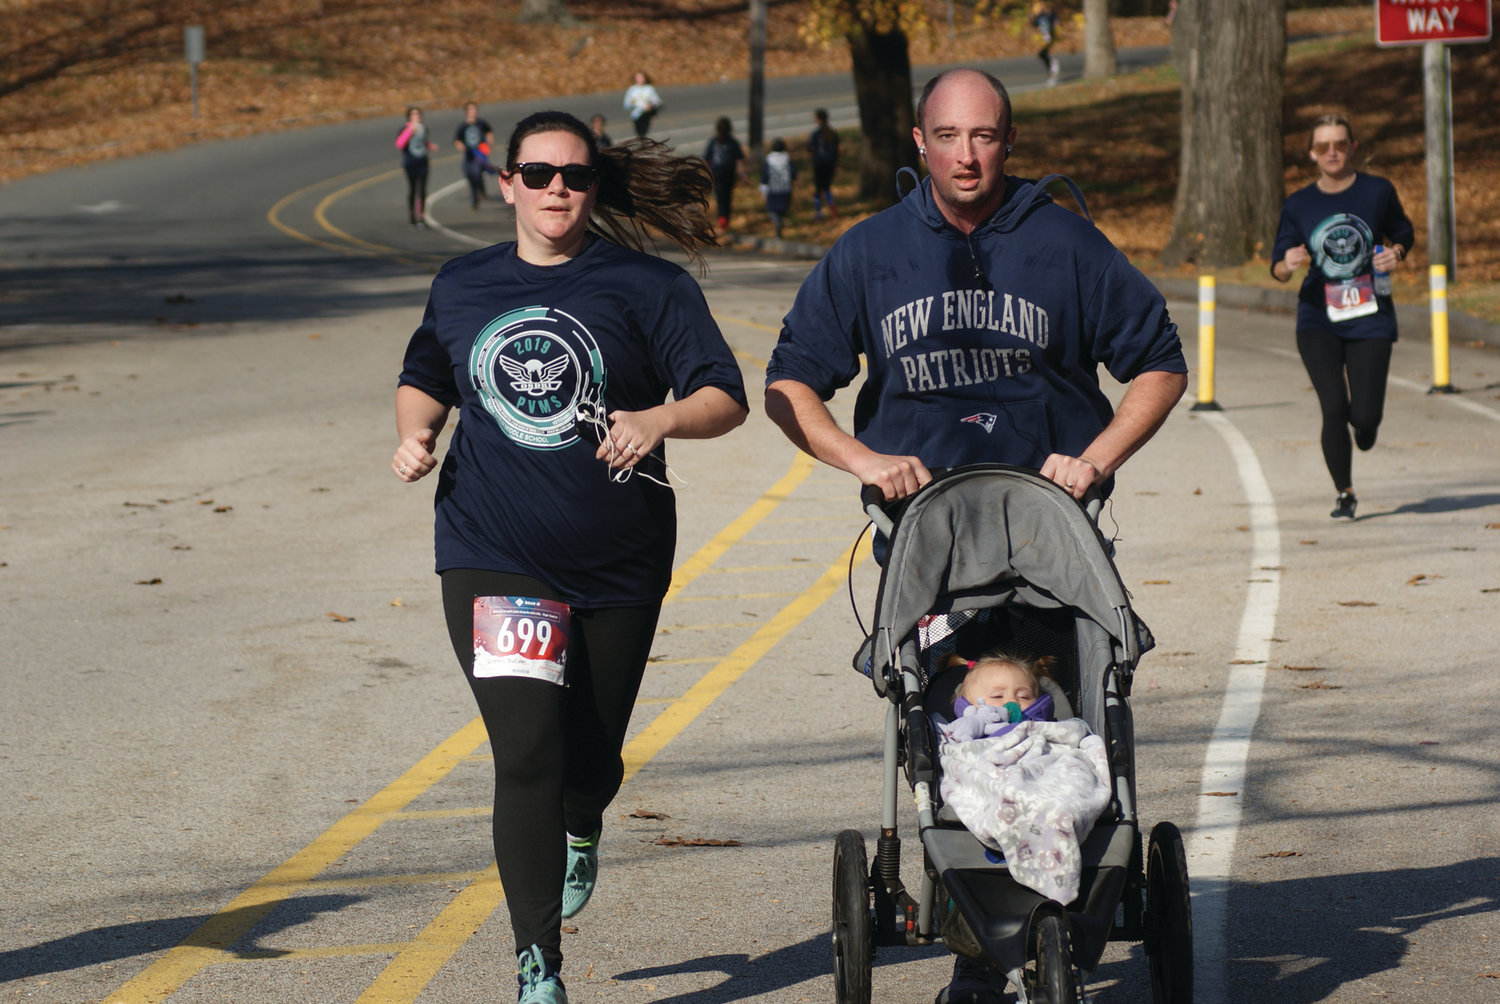 TAKING IT IN STRIDE: Matt and Lindsay Ryan of Warwick kept pace as they were joined by their daughter, 10-month-old Lillian. The family finished the course in just less than 40 minutes.